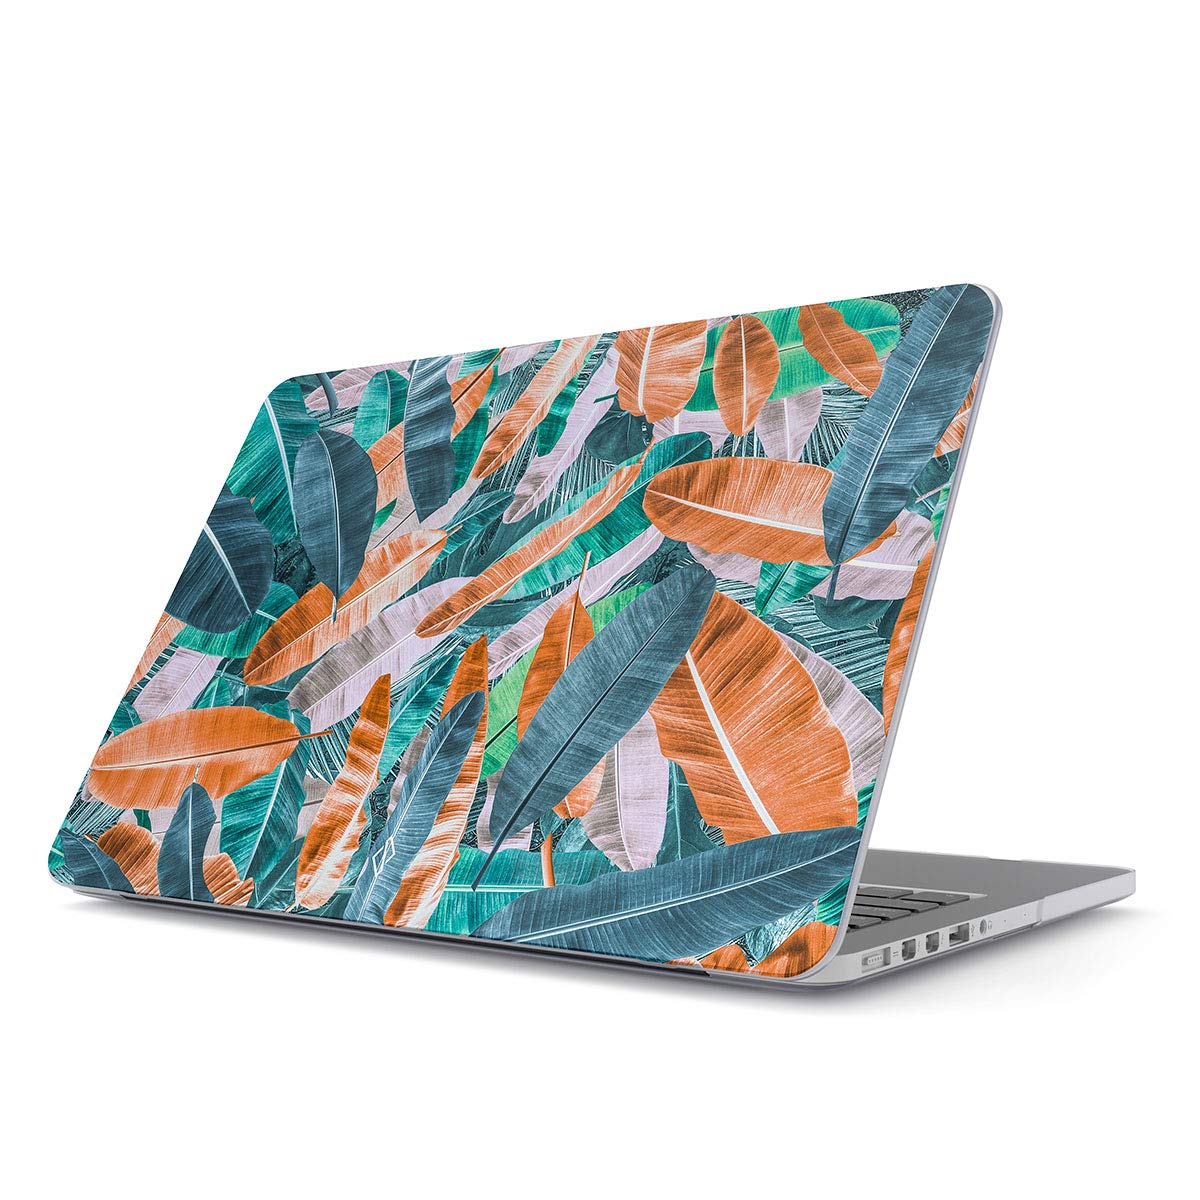 BURGA Hard Case Cover Compatible with MacBook Pro 15 Inch Case Release 2012-2015, Model: A1398 Retina Display NO CD-ROM Tropical Bannana Tree Leaves Palm Leaf Exotic Colorful Palms Summer